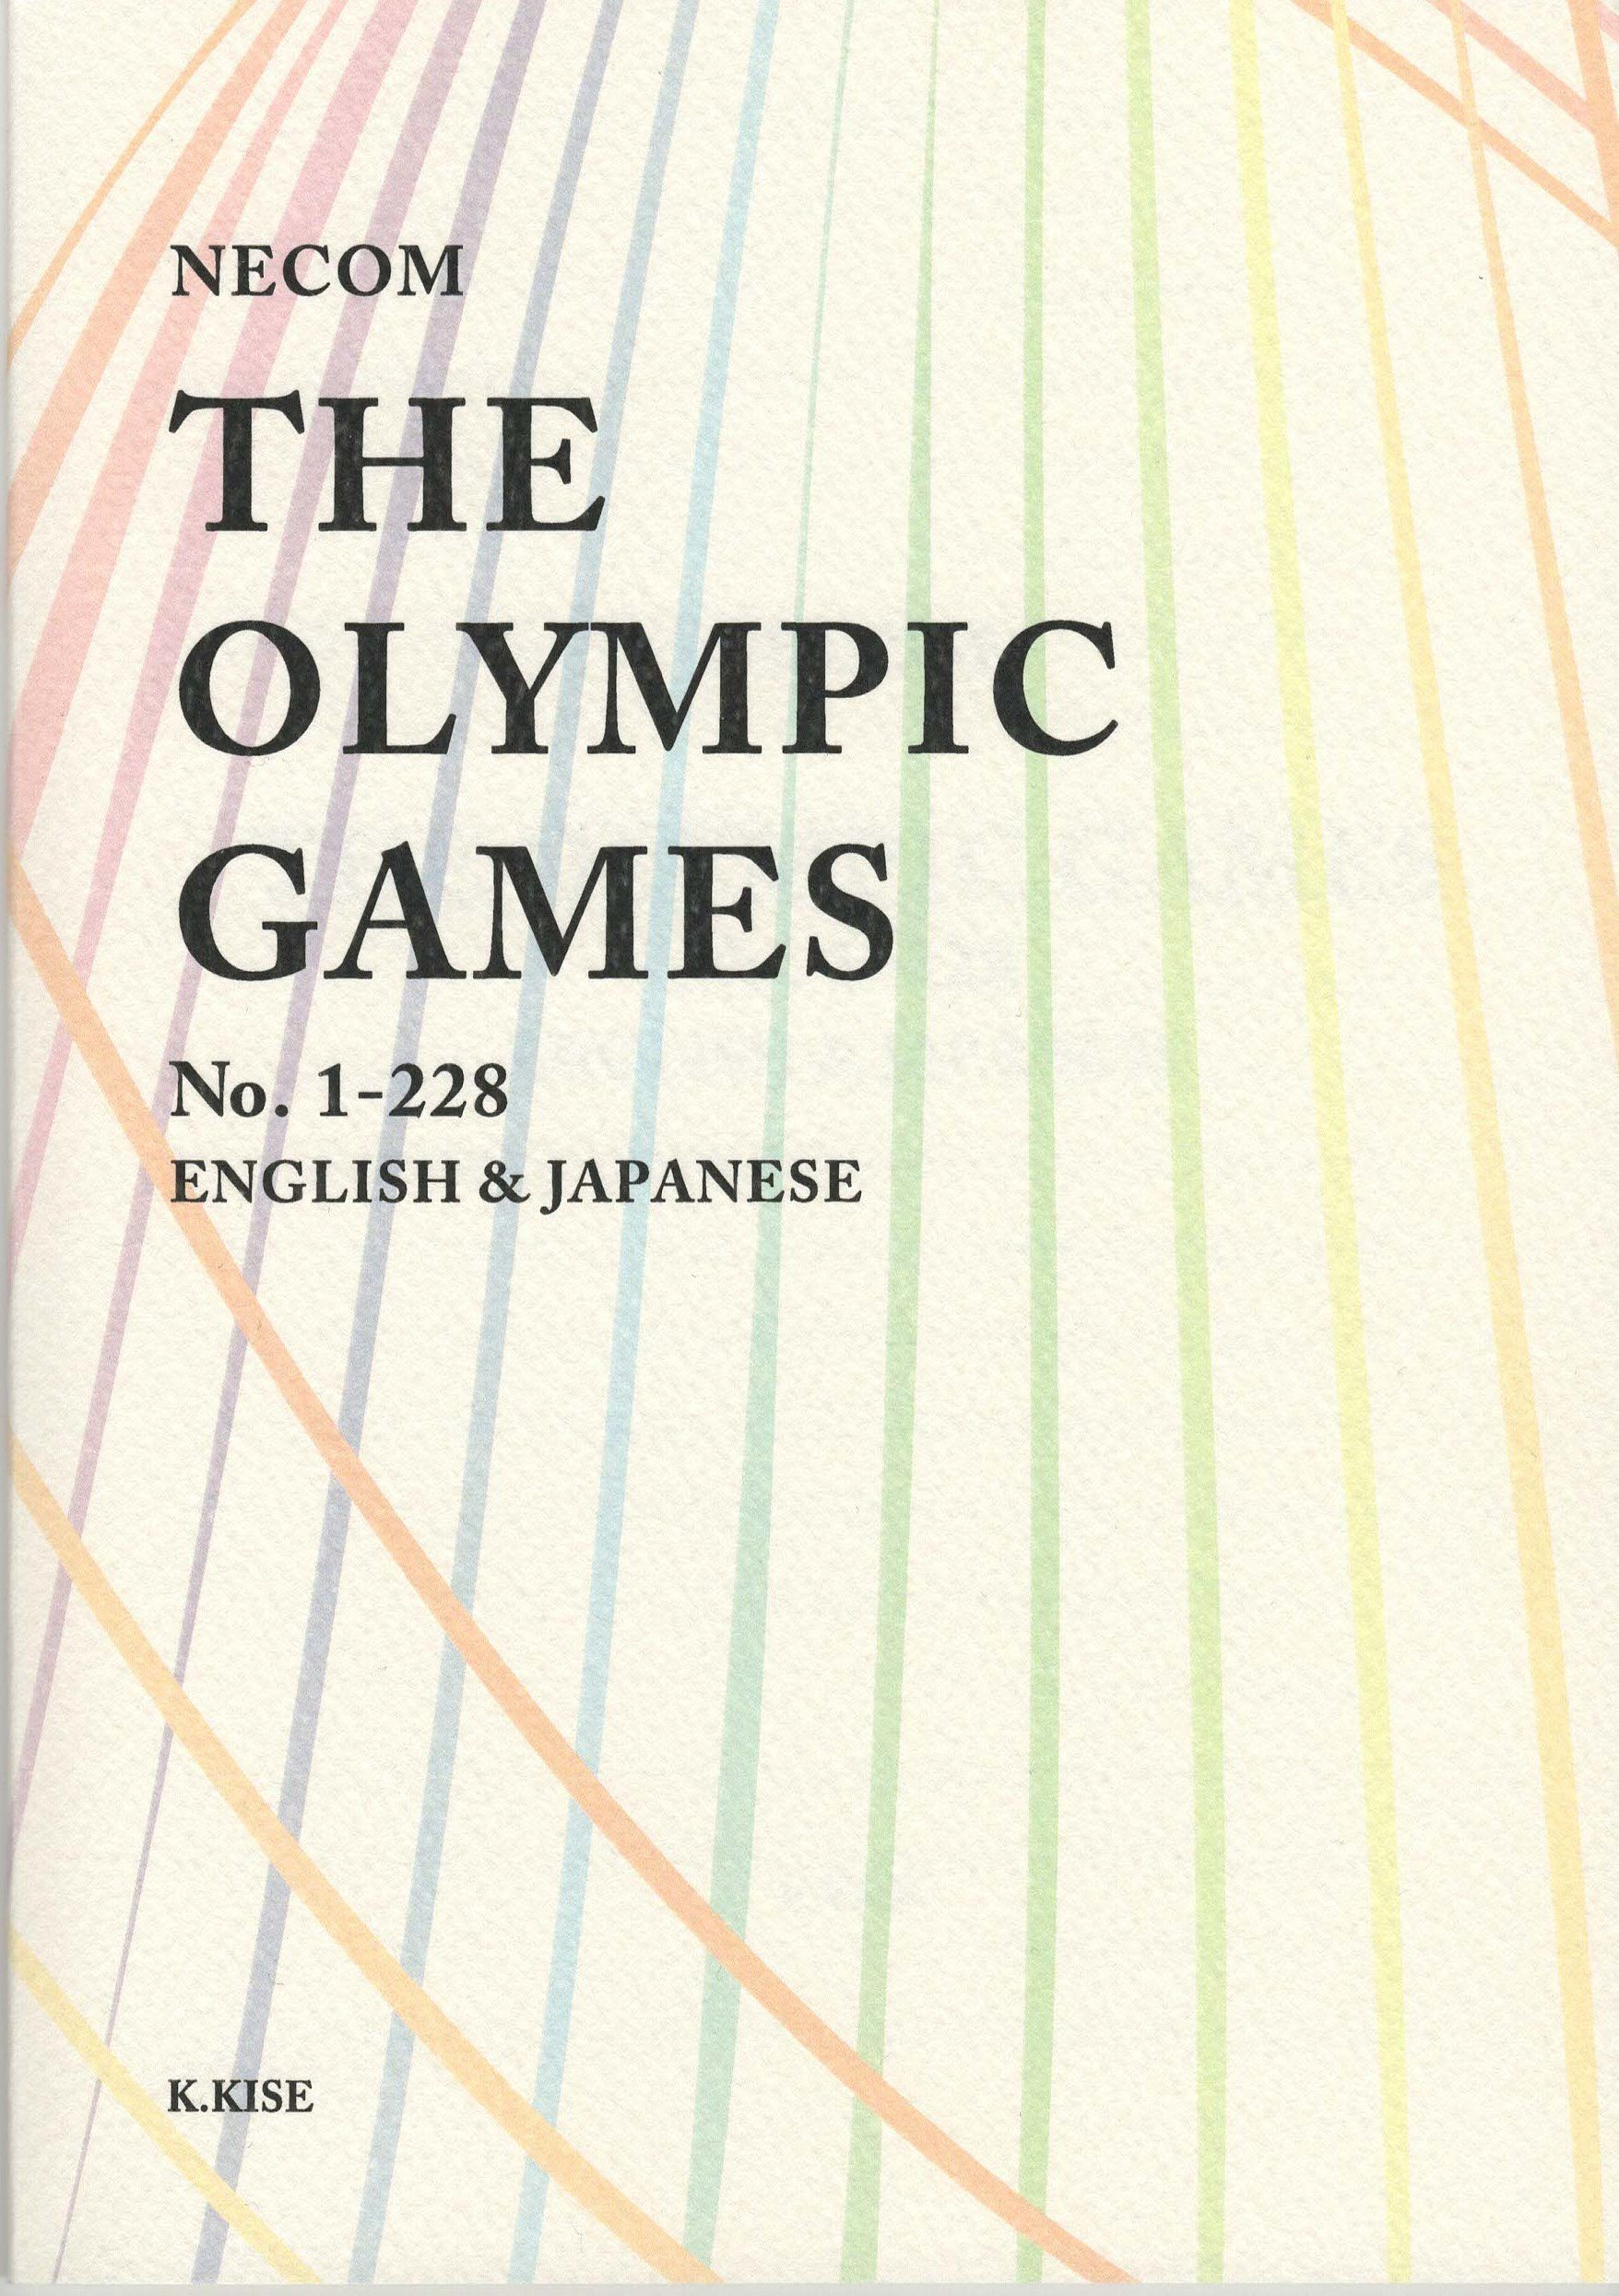 NECOM  THE OLYMPIC GAMES